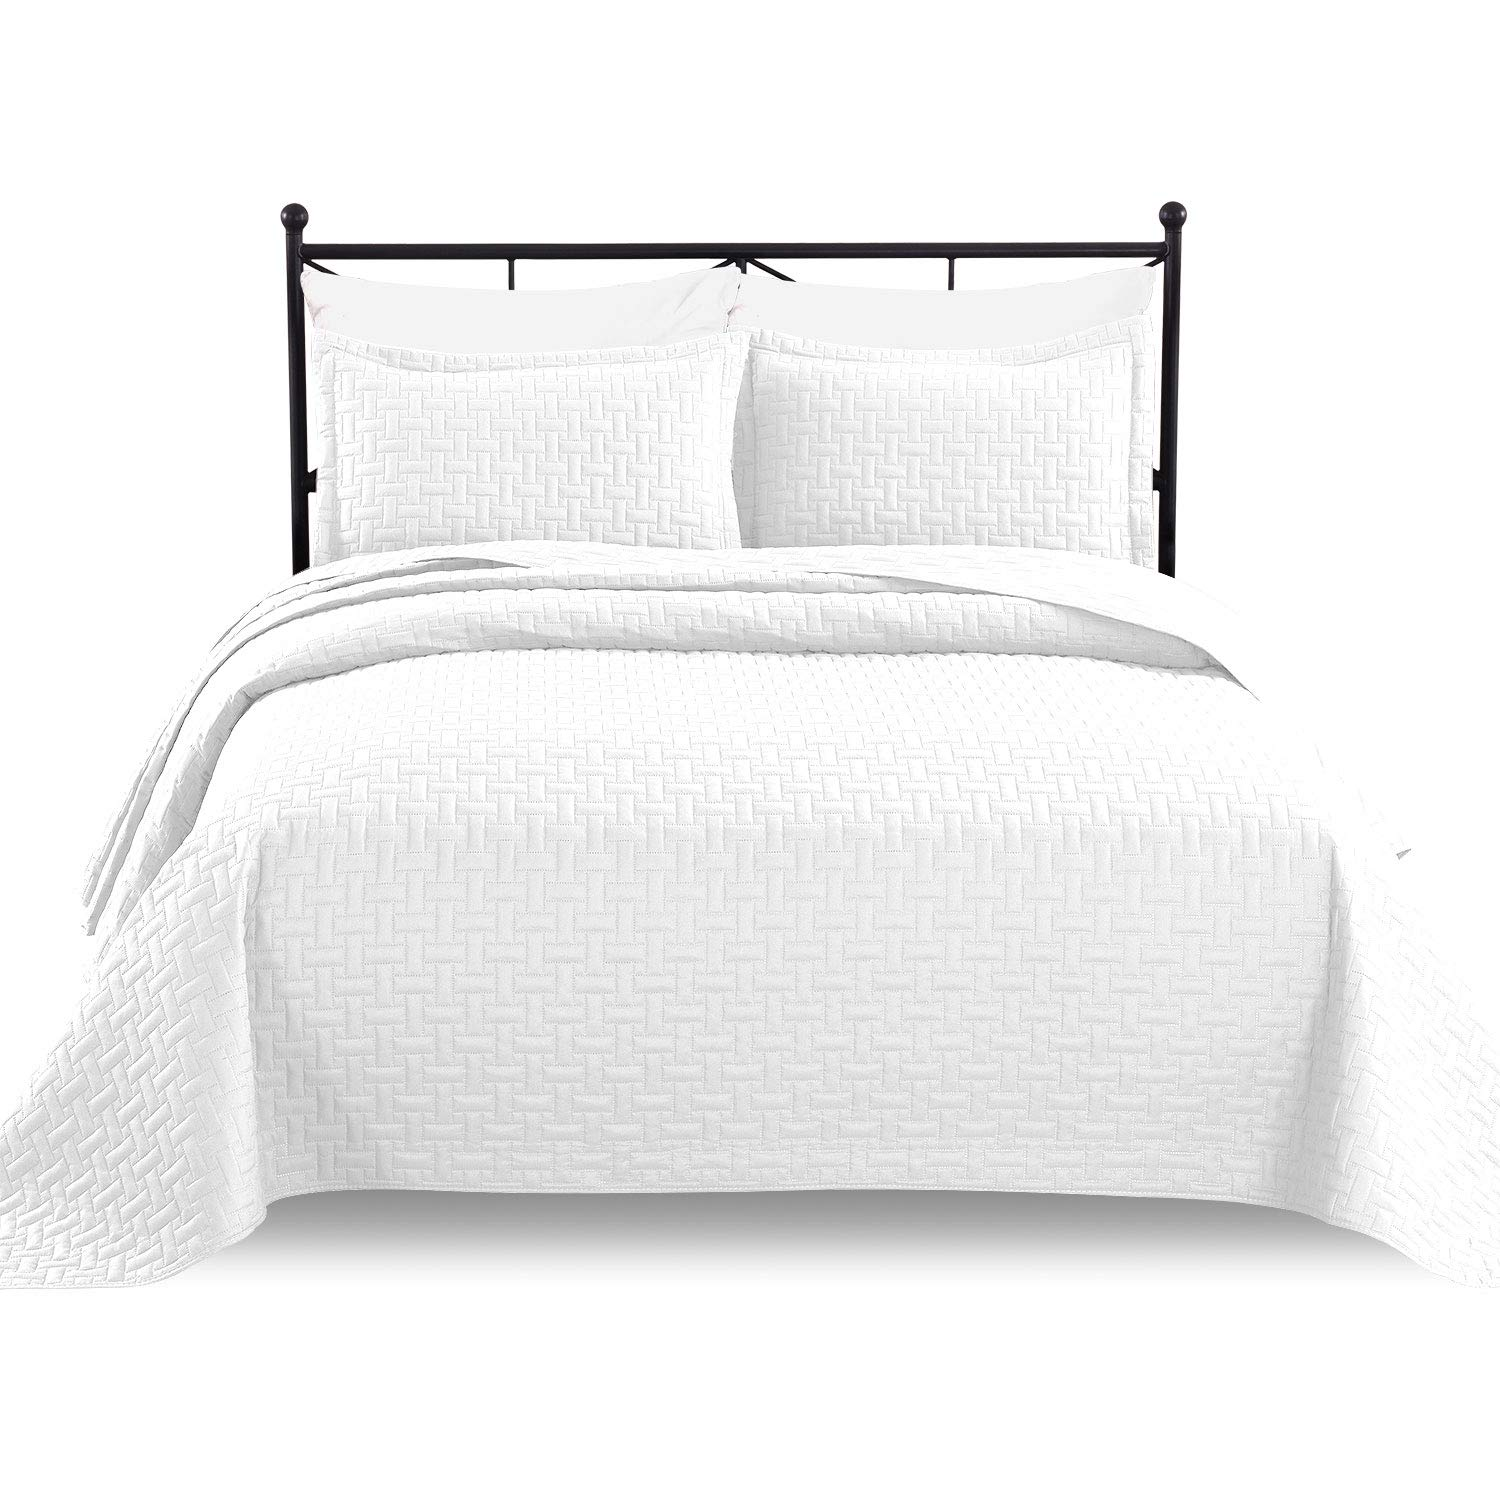 Luxe Bedding 3-Piece Oversized Quilted Bedspread Coverlet Set (Full/Queen, White)